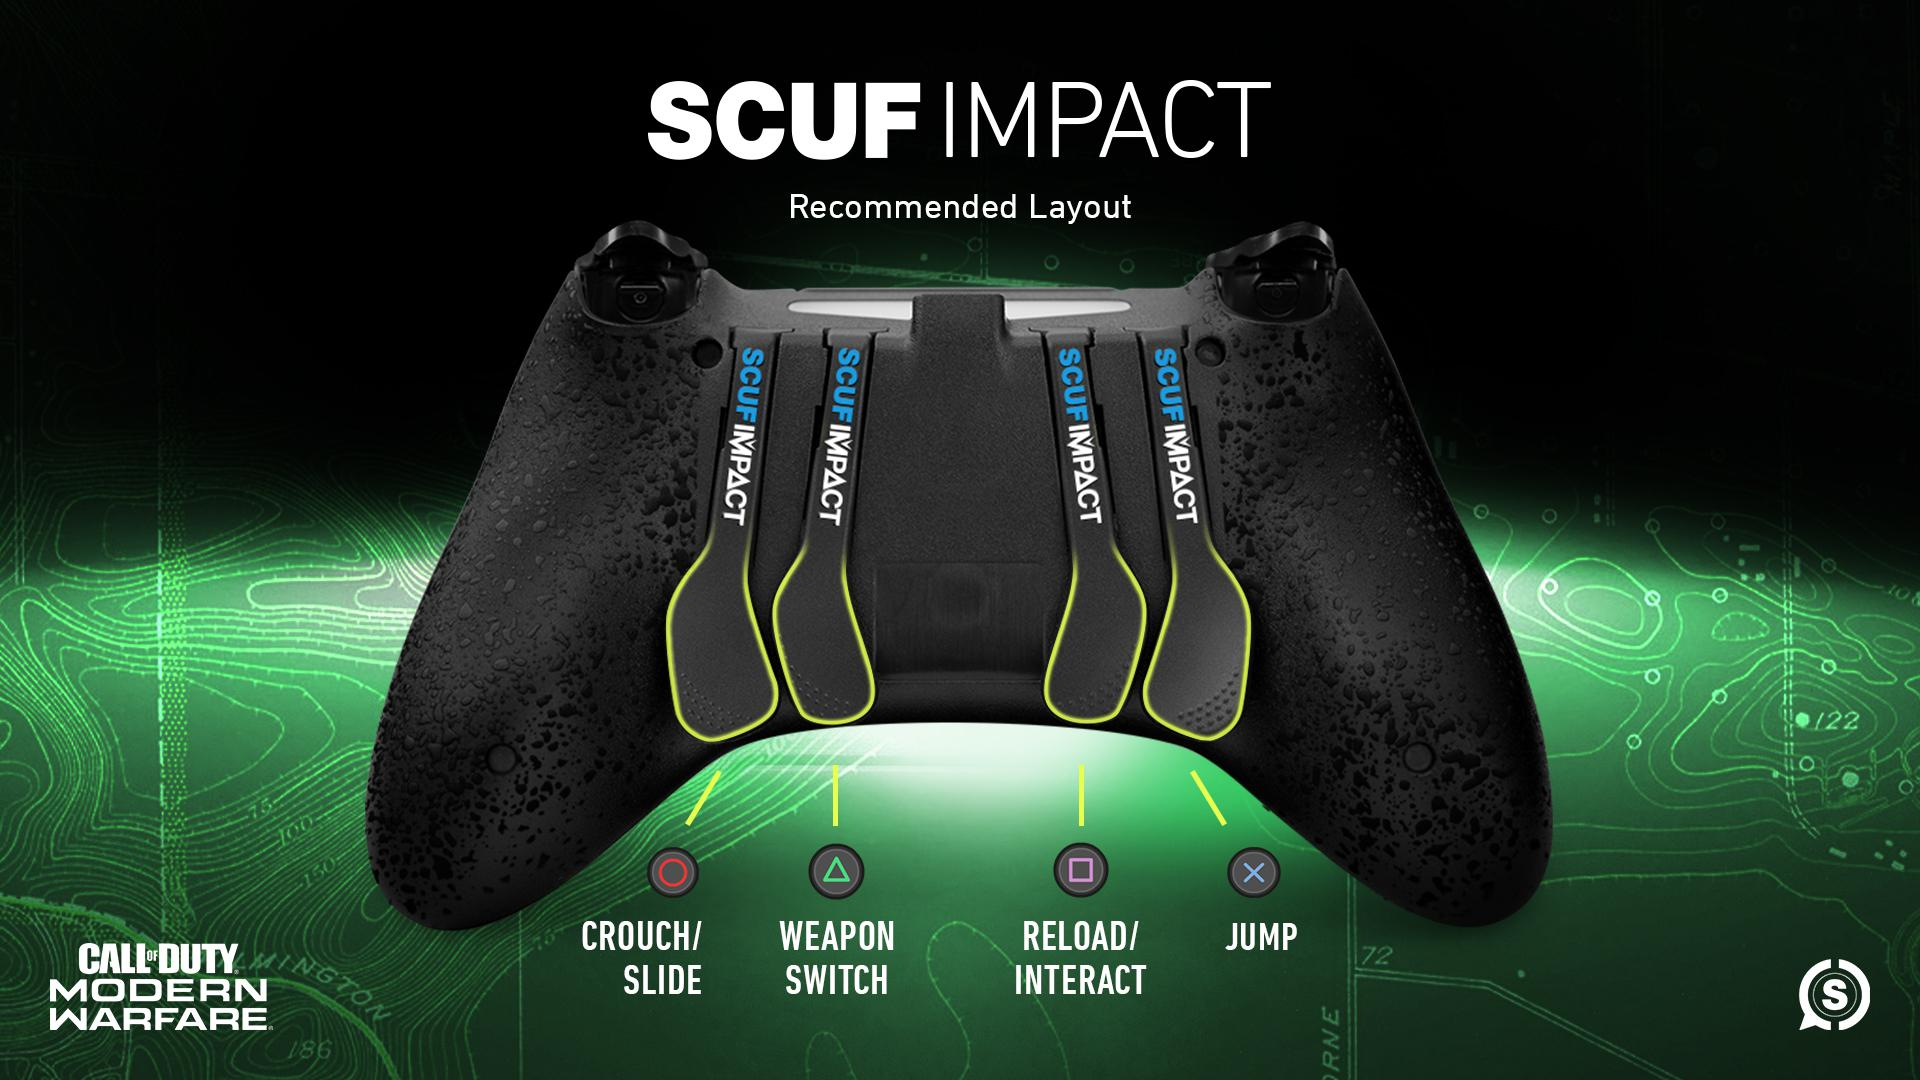 SCUF IMPACT Call of Duty Modern Warfare Controller Configuration